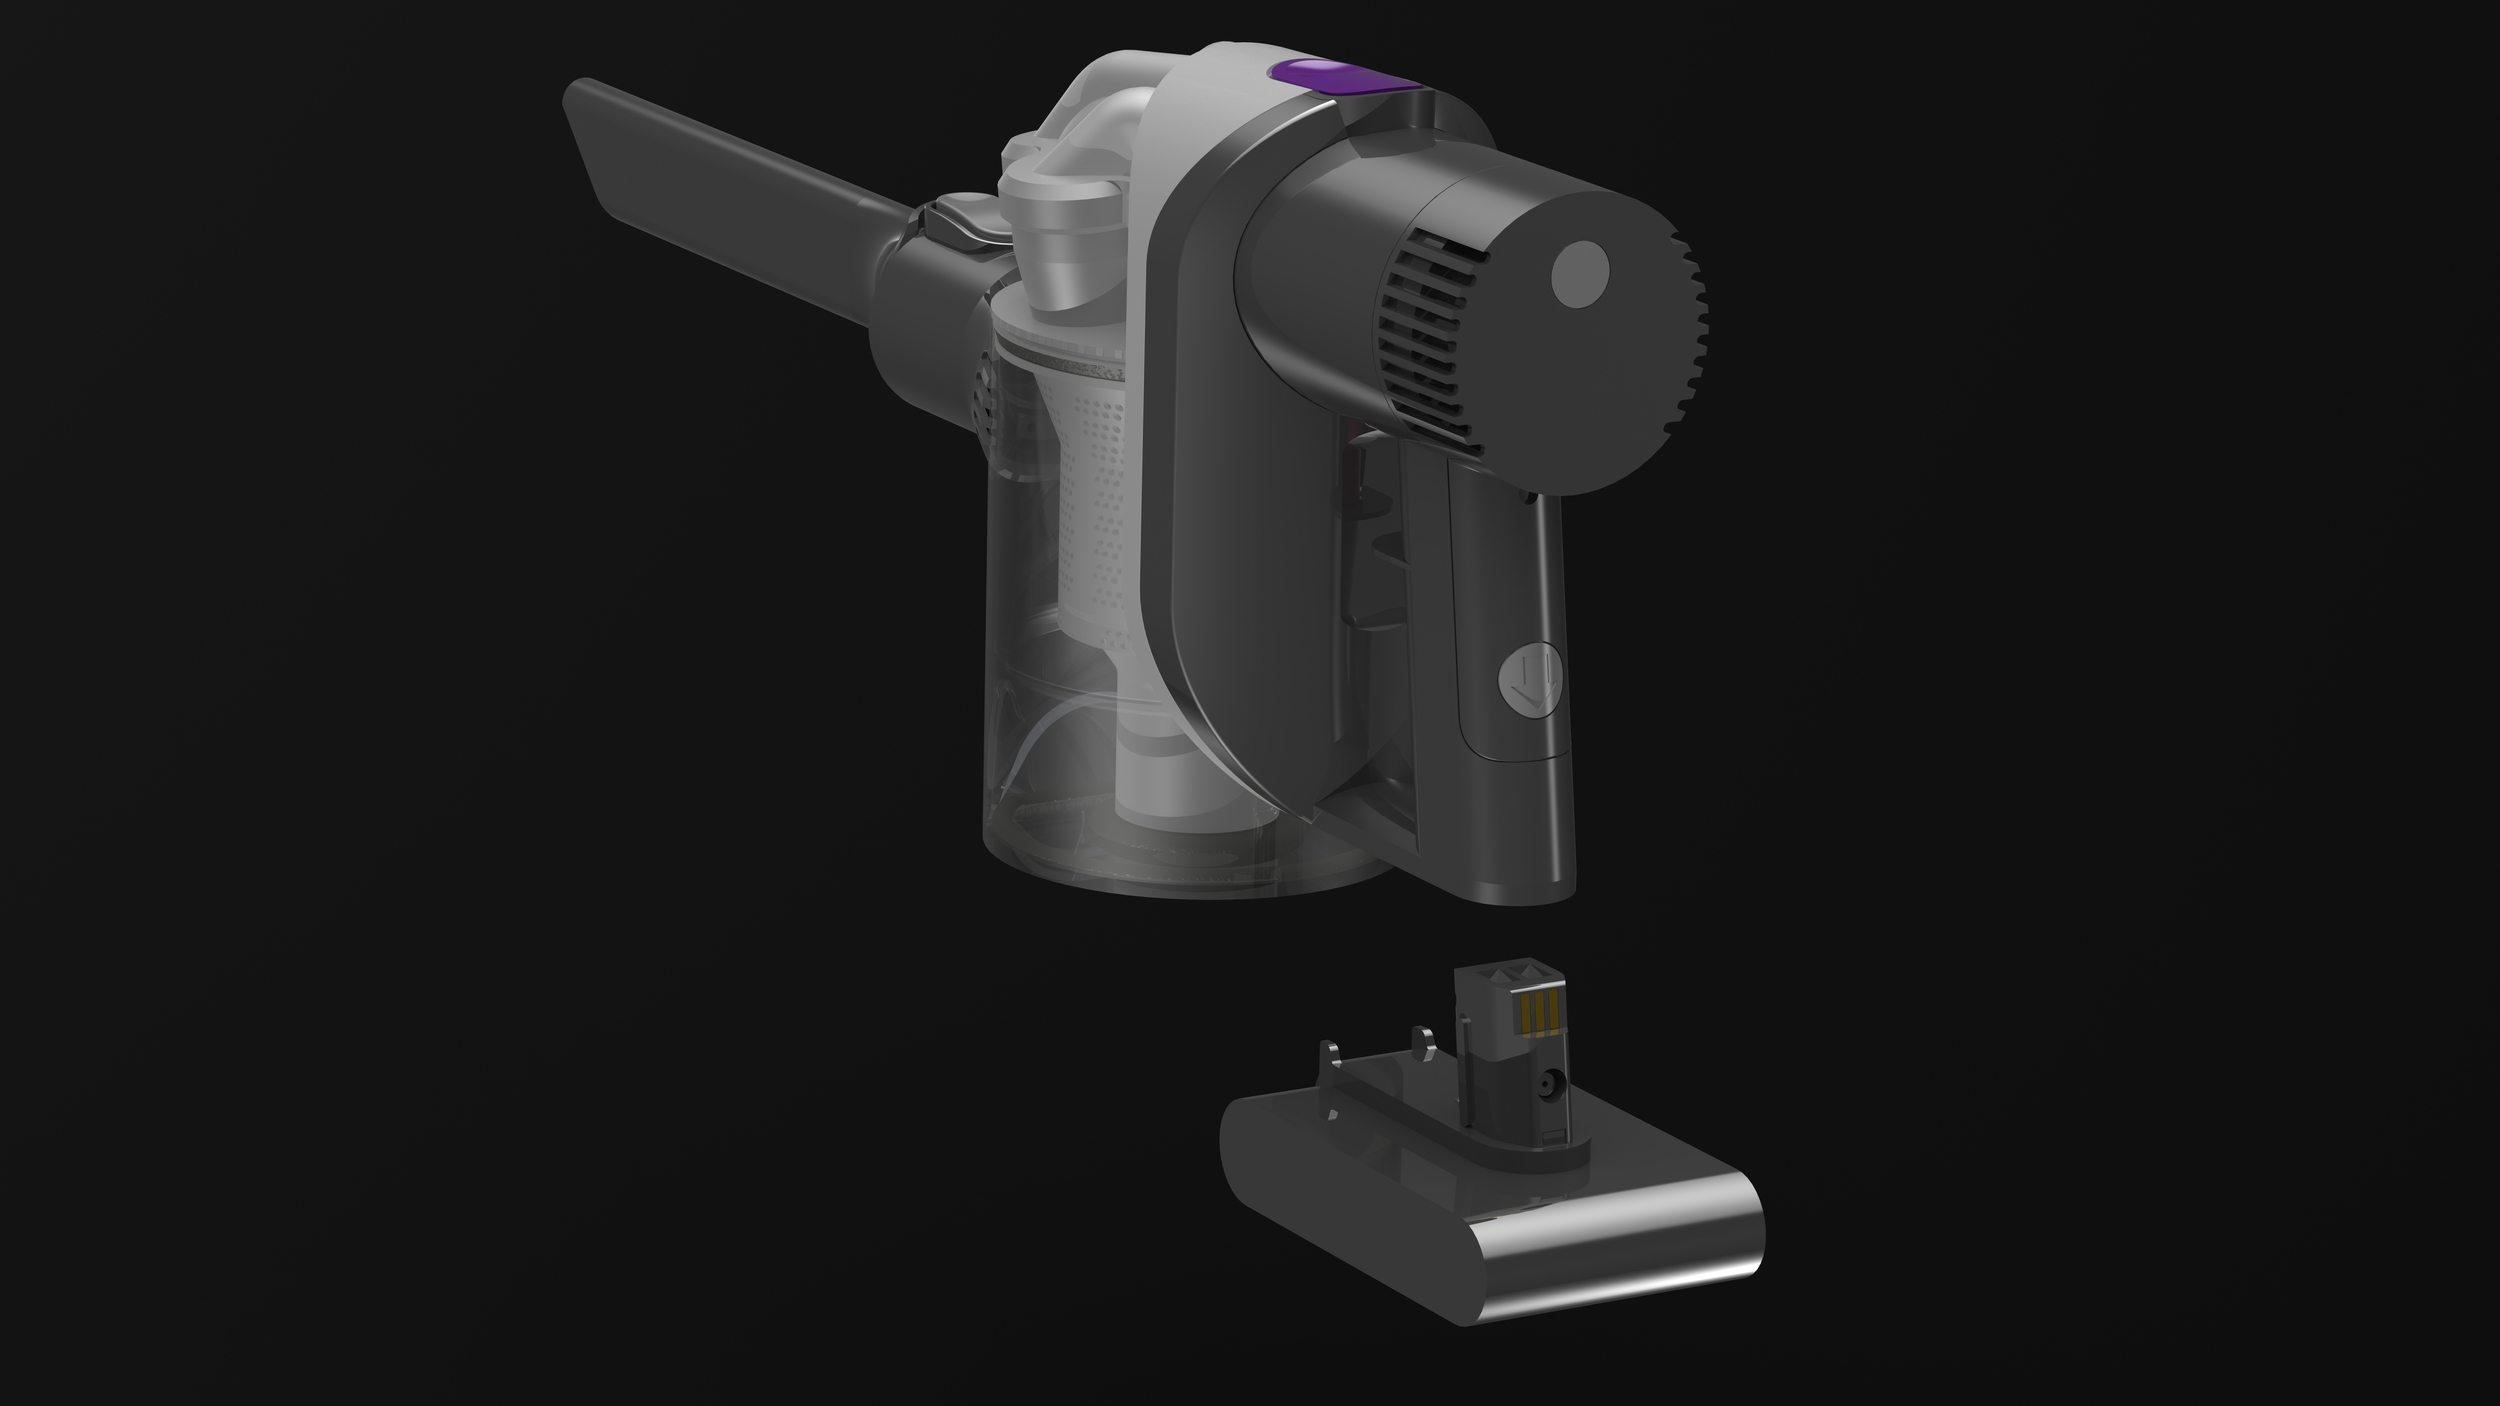 A 3D modelling and rendering exercise - the Dyson DC34 modelled and rendered in SolidWorks